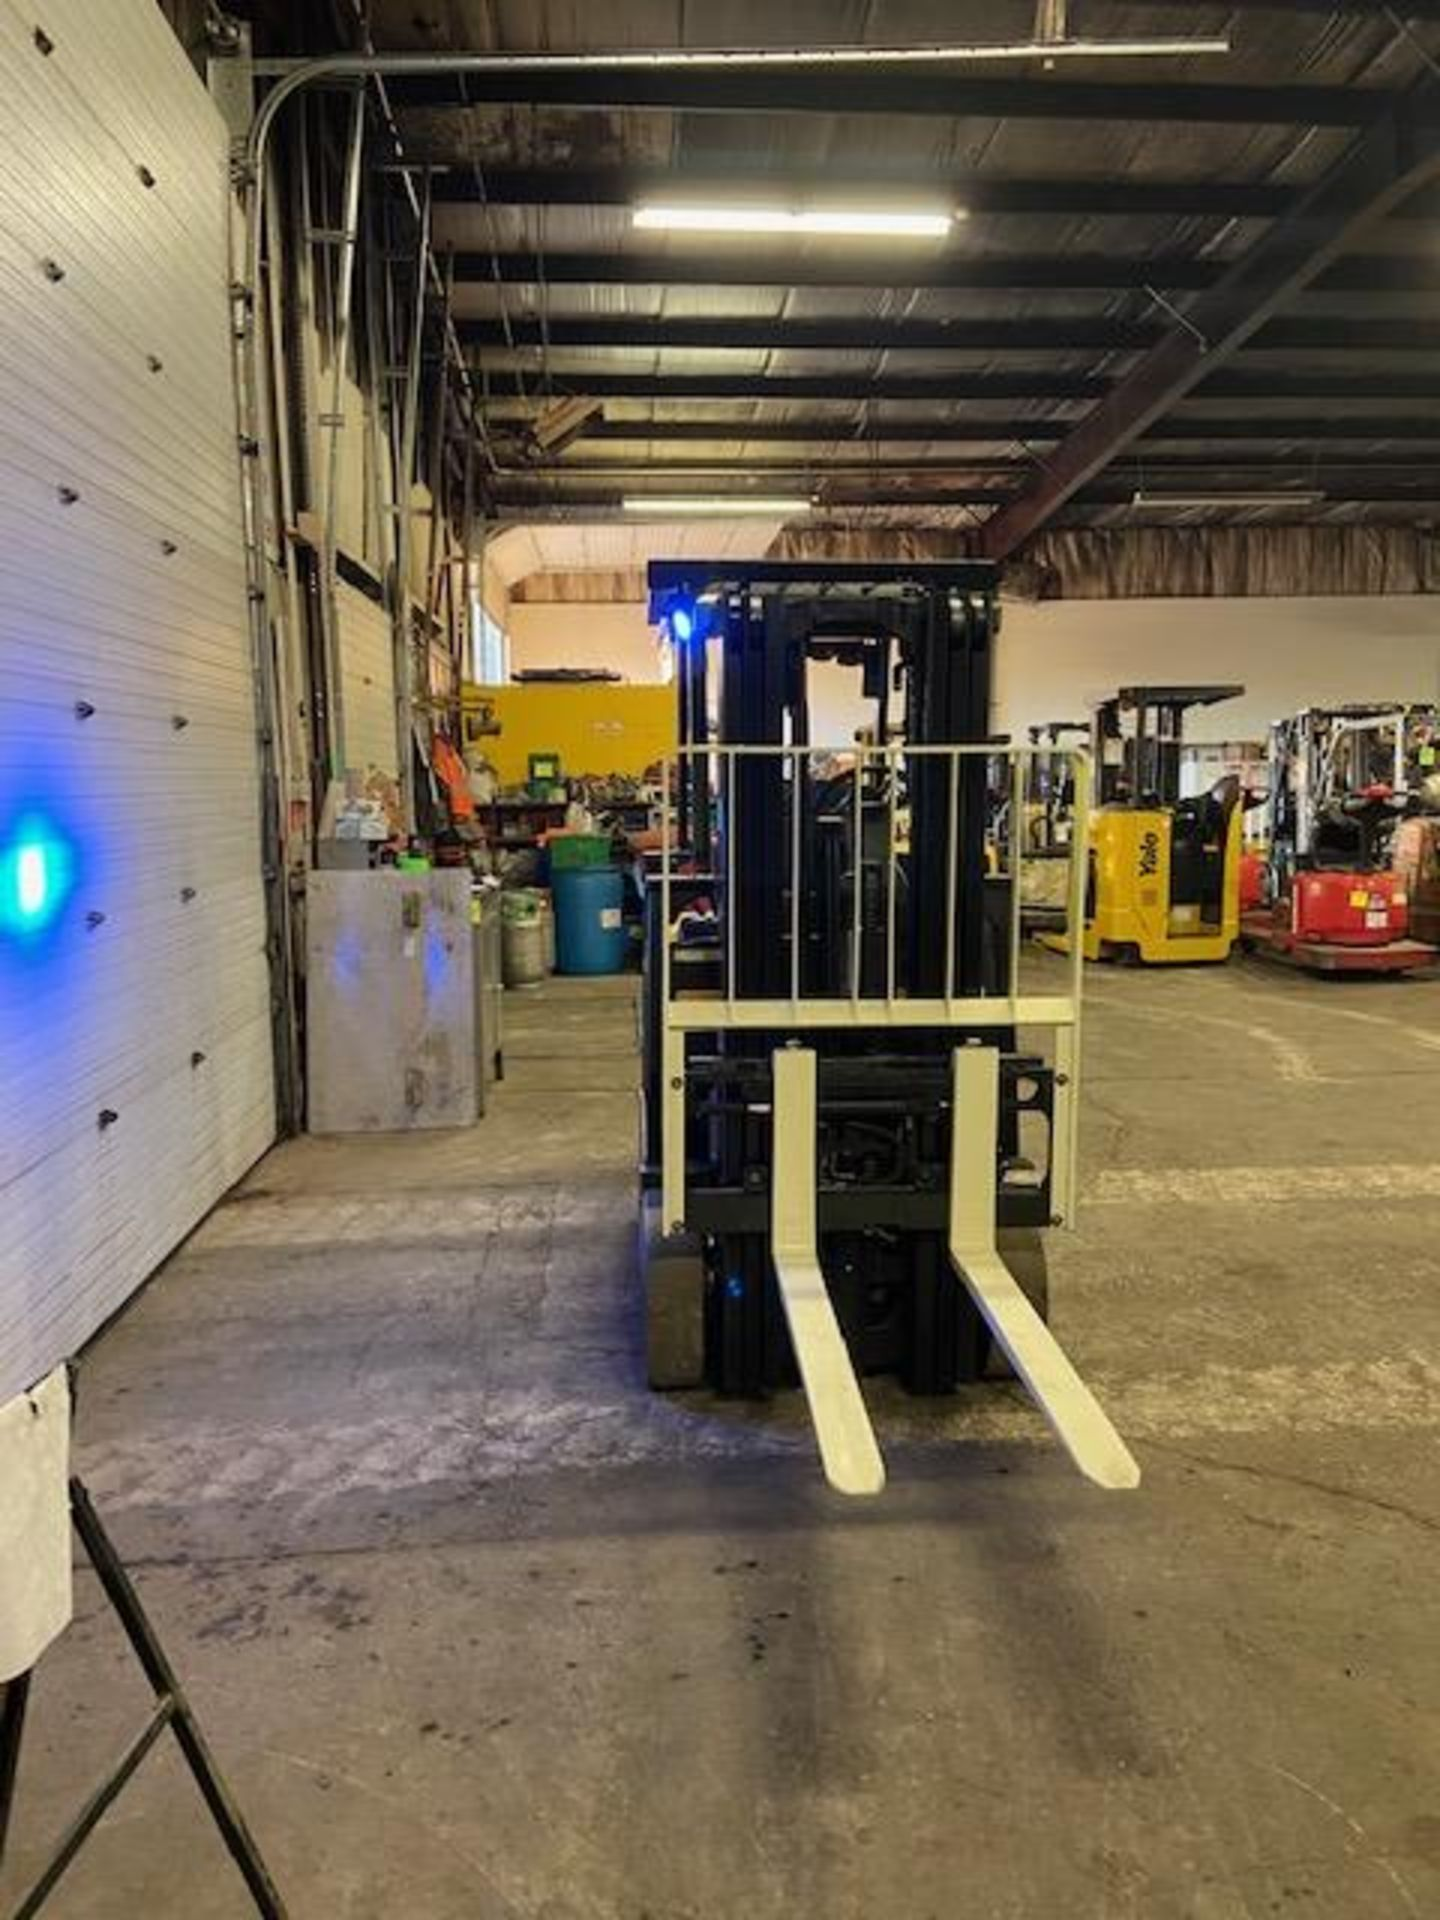 FREE CUSTOMS - 2009 Yale 5000lbs Capacity Forklift Electric with 3-STAGE MAST with sideshift - Image 3 of 3